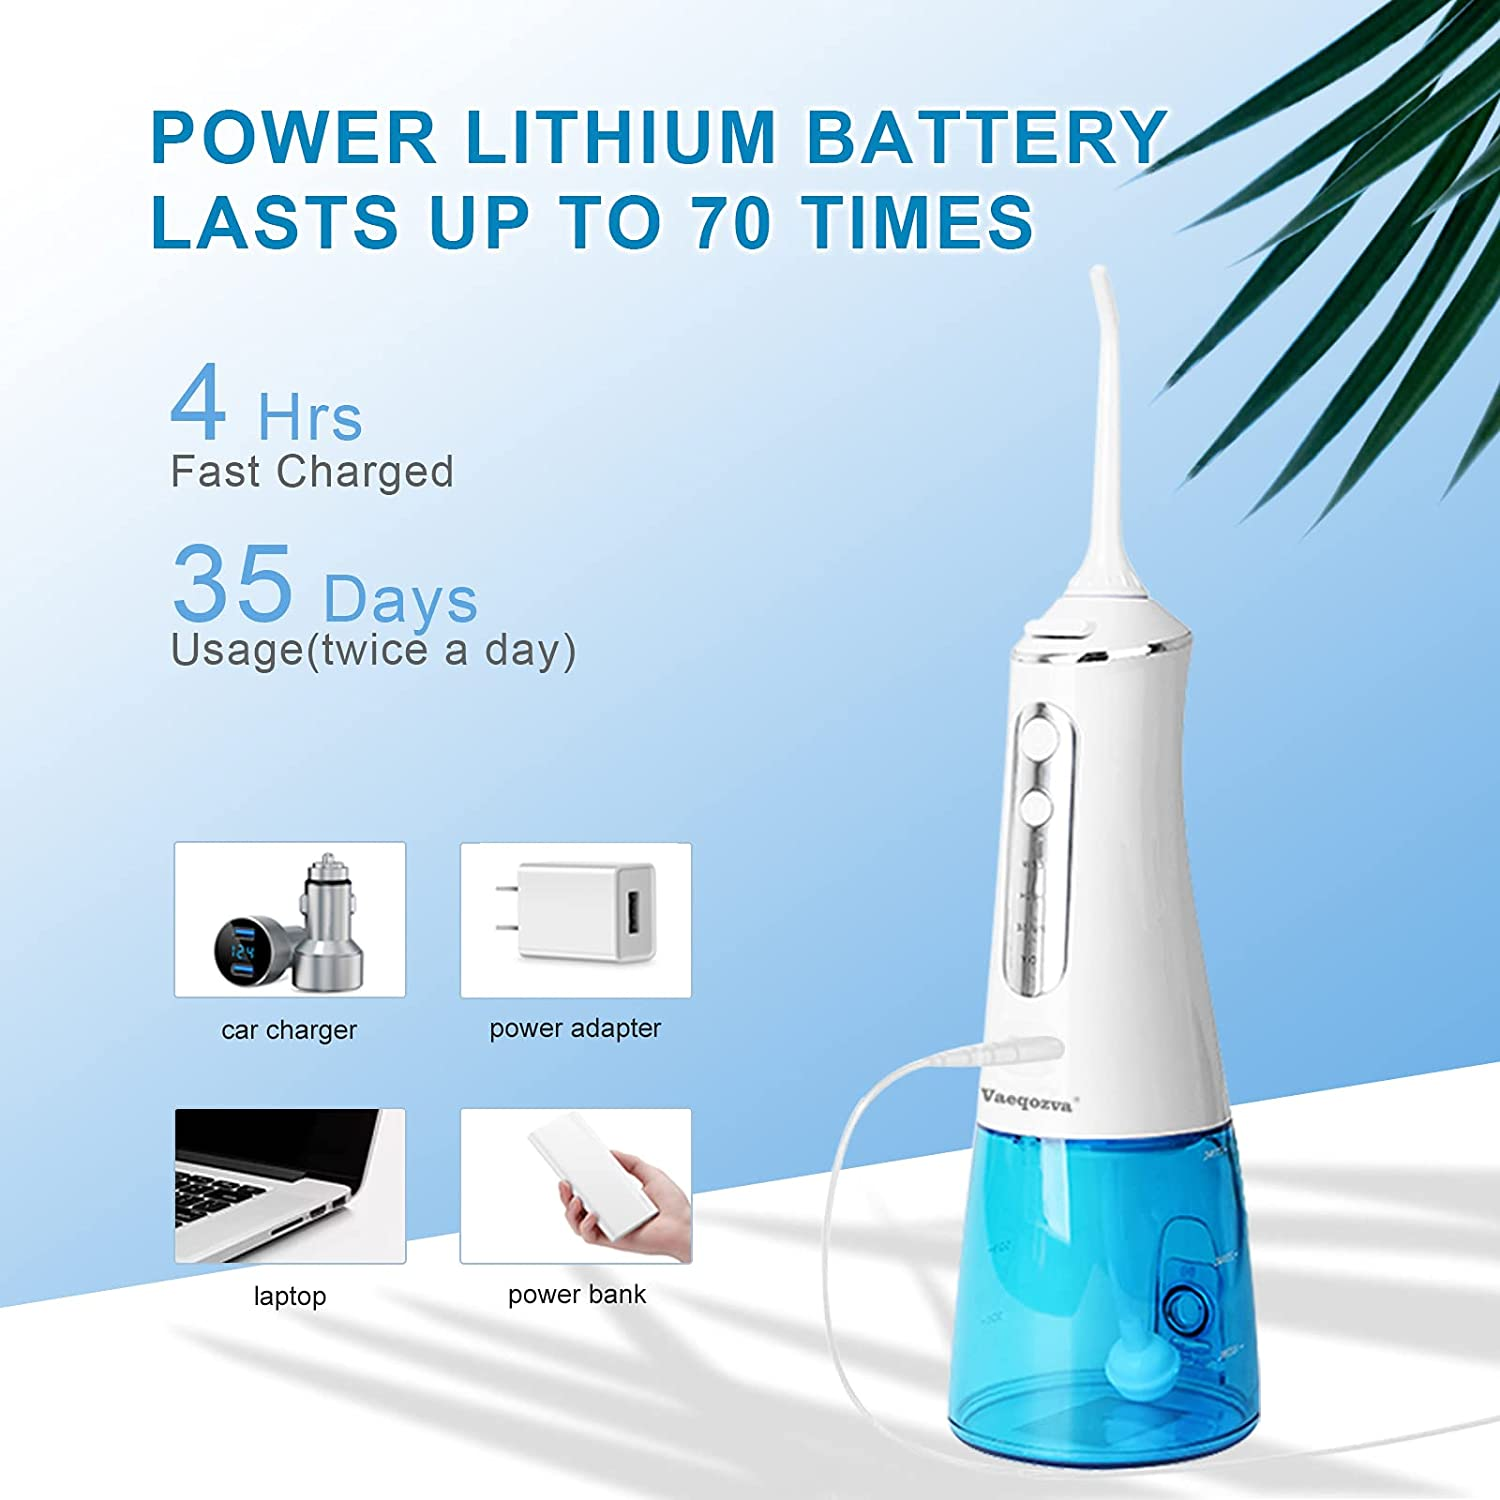 Water Flosser Cordlessfor Teeth, Vaeqozva Portable Oral Irrigator for Braces with 5 JetTips 300ML Water Tank IPX7 Waterproof 4 ModesRechargeable Dental Floss for Home and Travel : Beauty & Personal Care